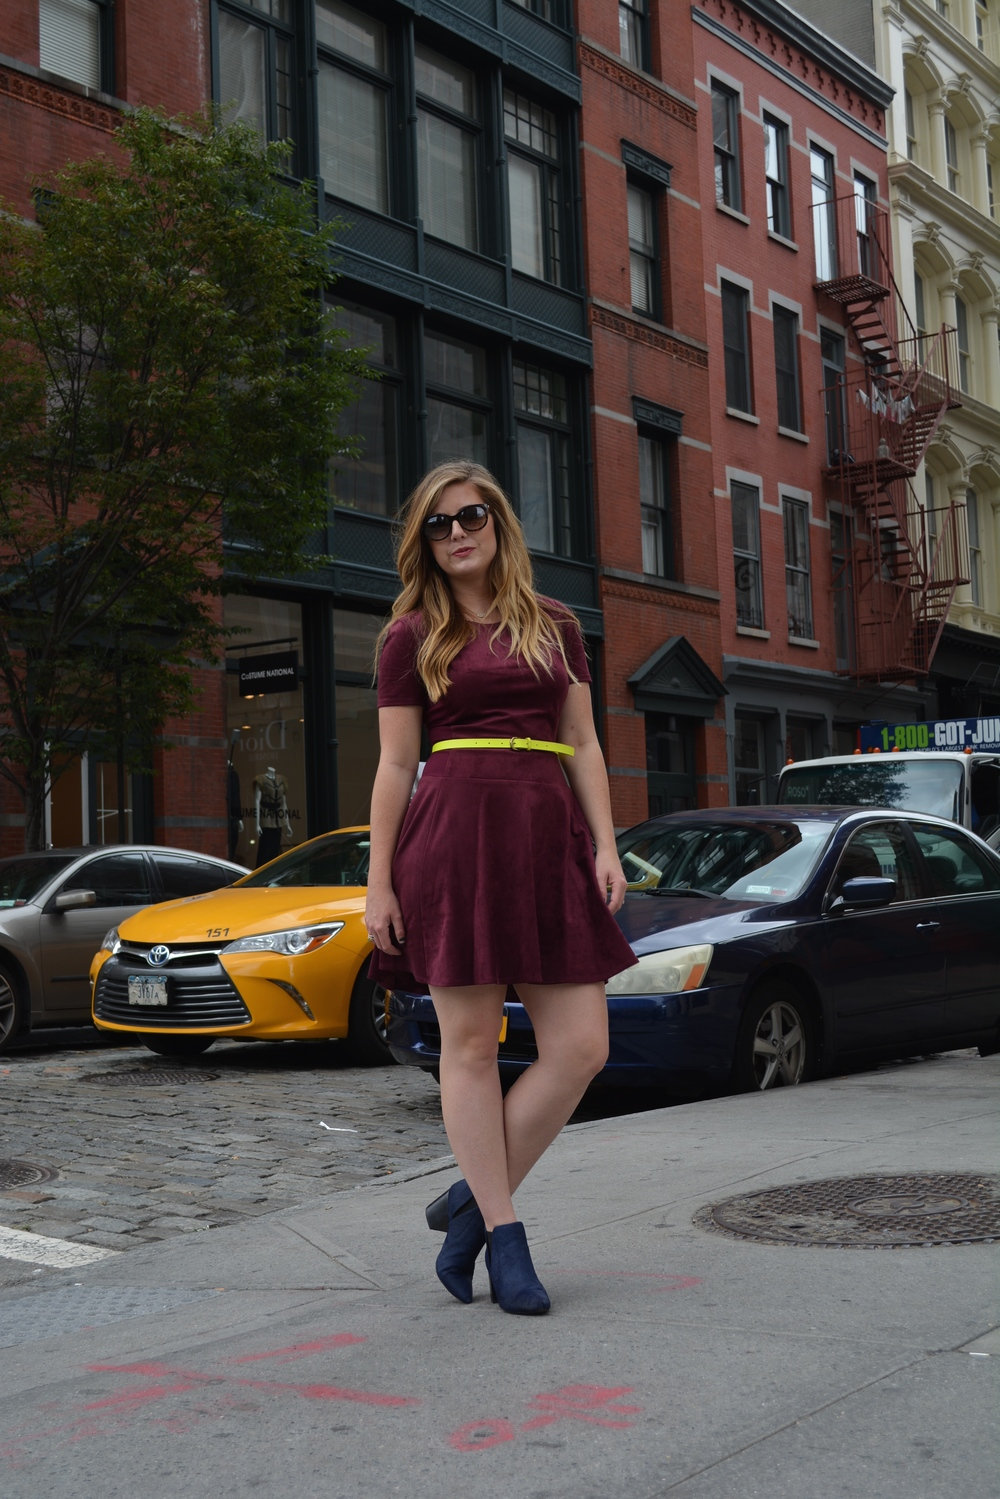 Merlot suede dress on Sophisticaited.com #NYFW